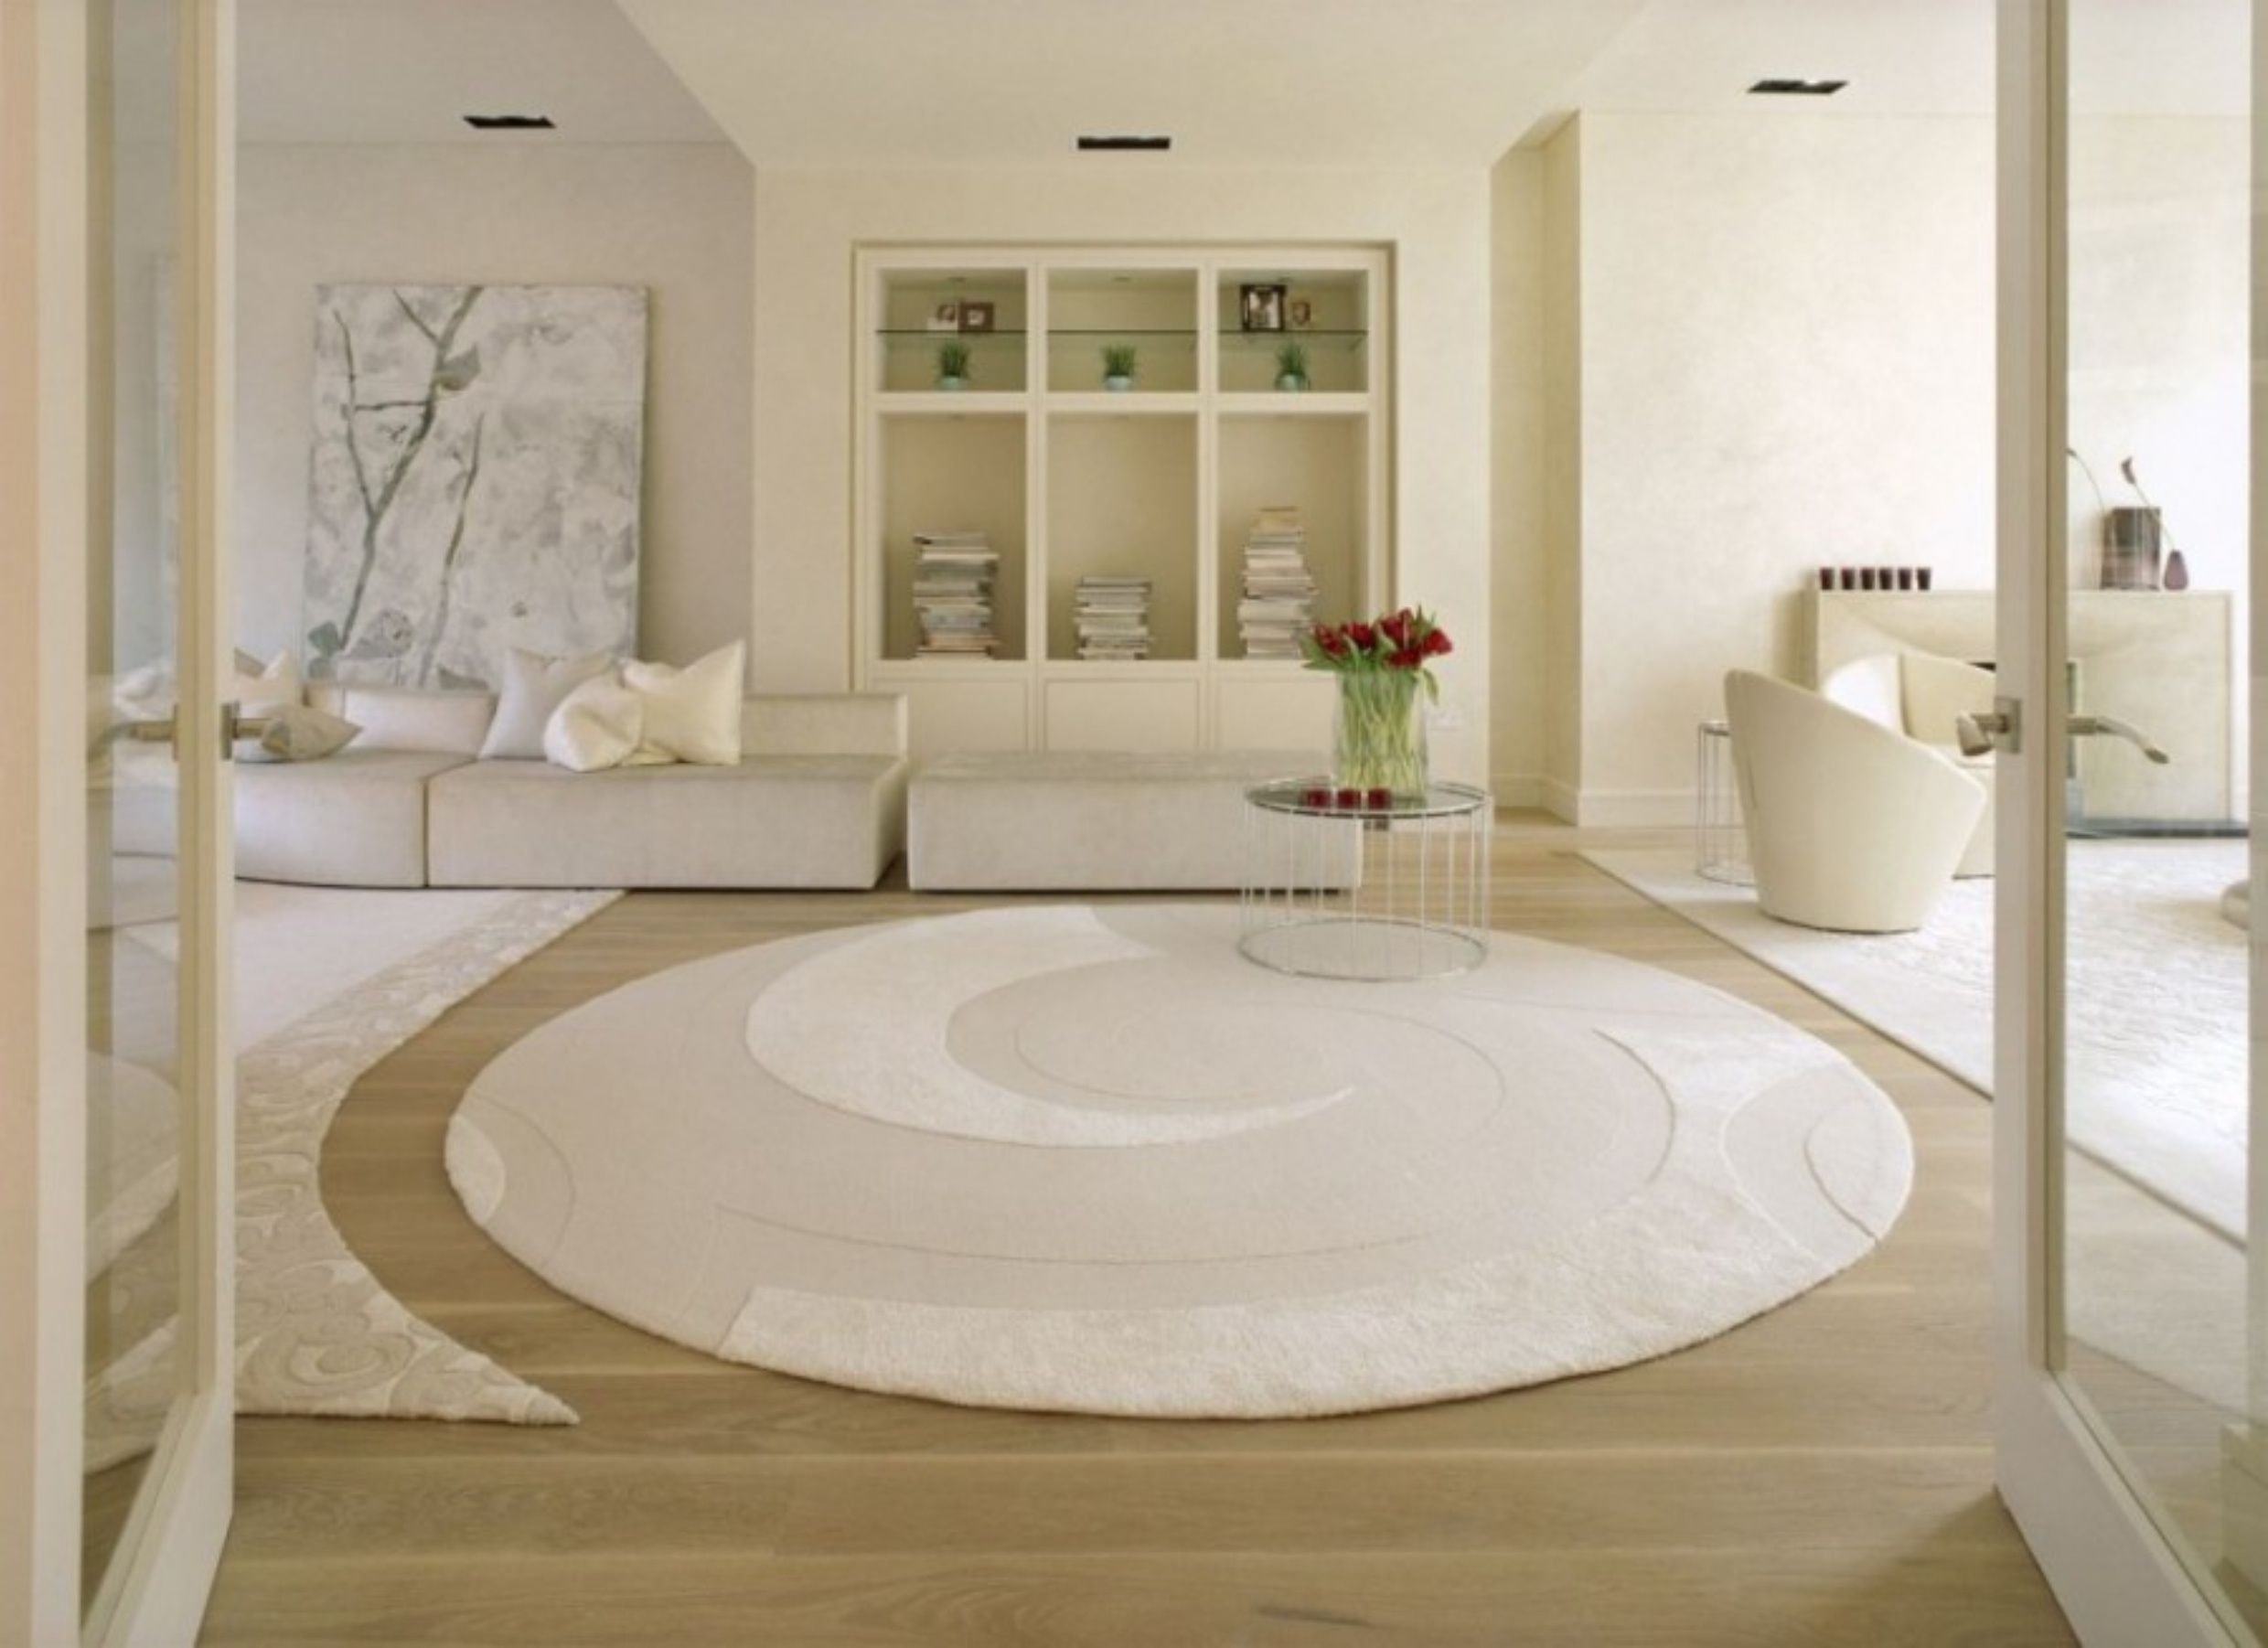 White Round Extra Large Bathroom Rug Large Bathroom Rugs - Round bath mats or rugs for bathroom decorating ideas